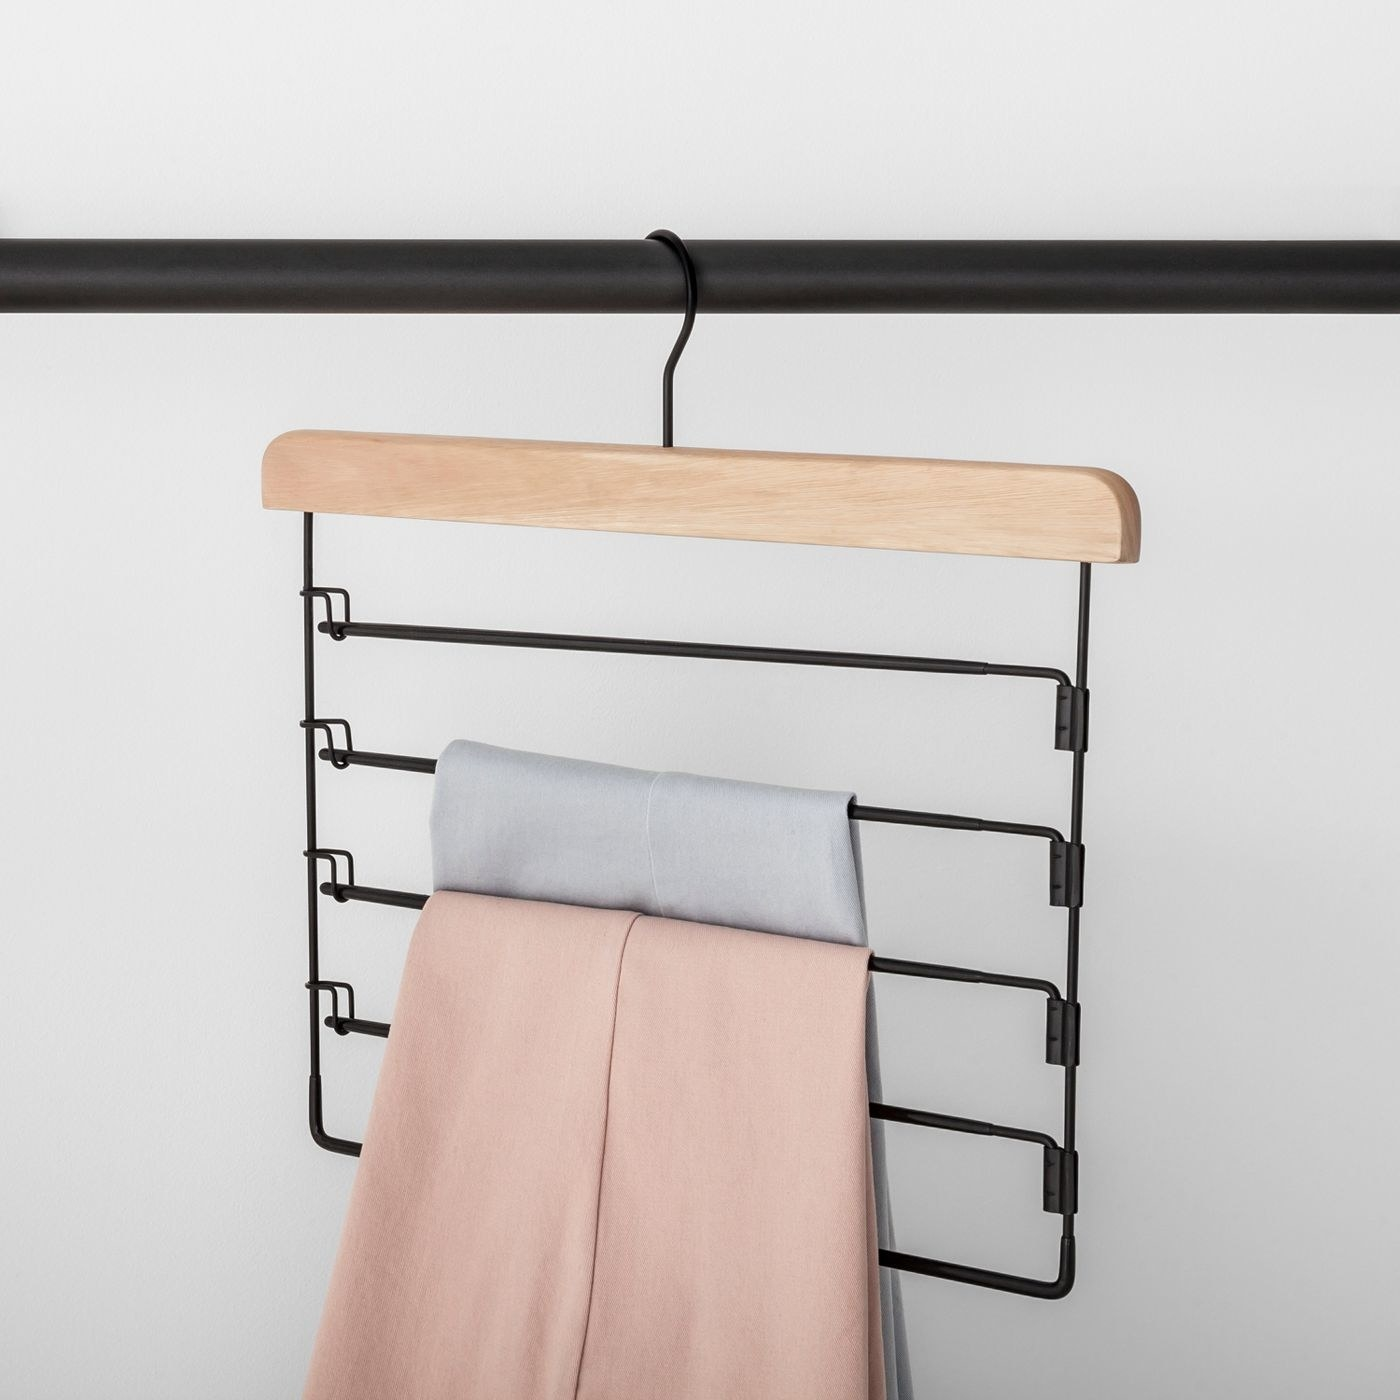 five tier pants hanger in a closet with two pairs of pants hanging on it